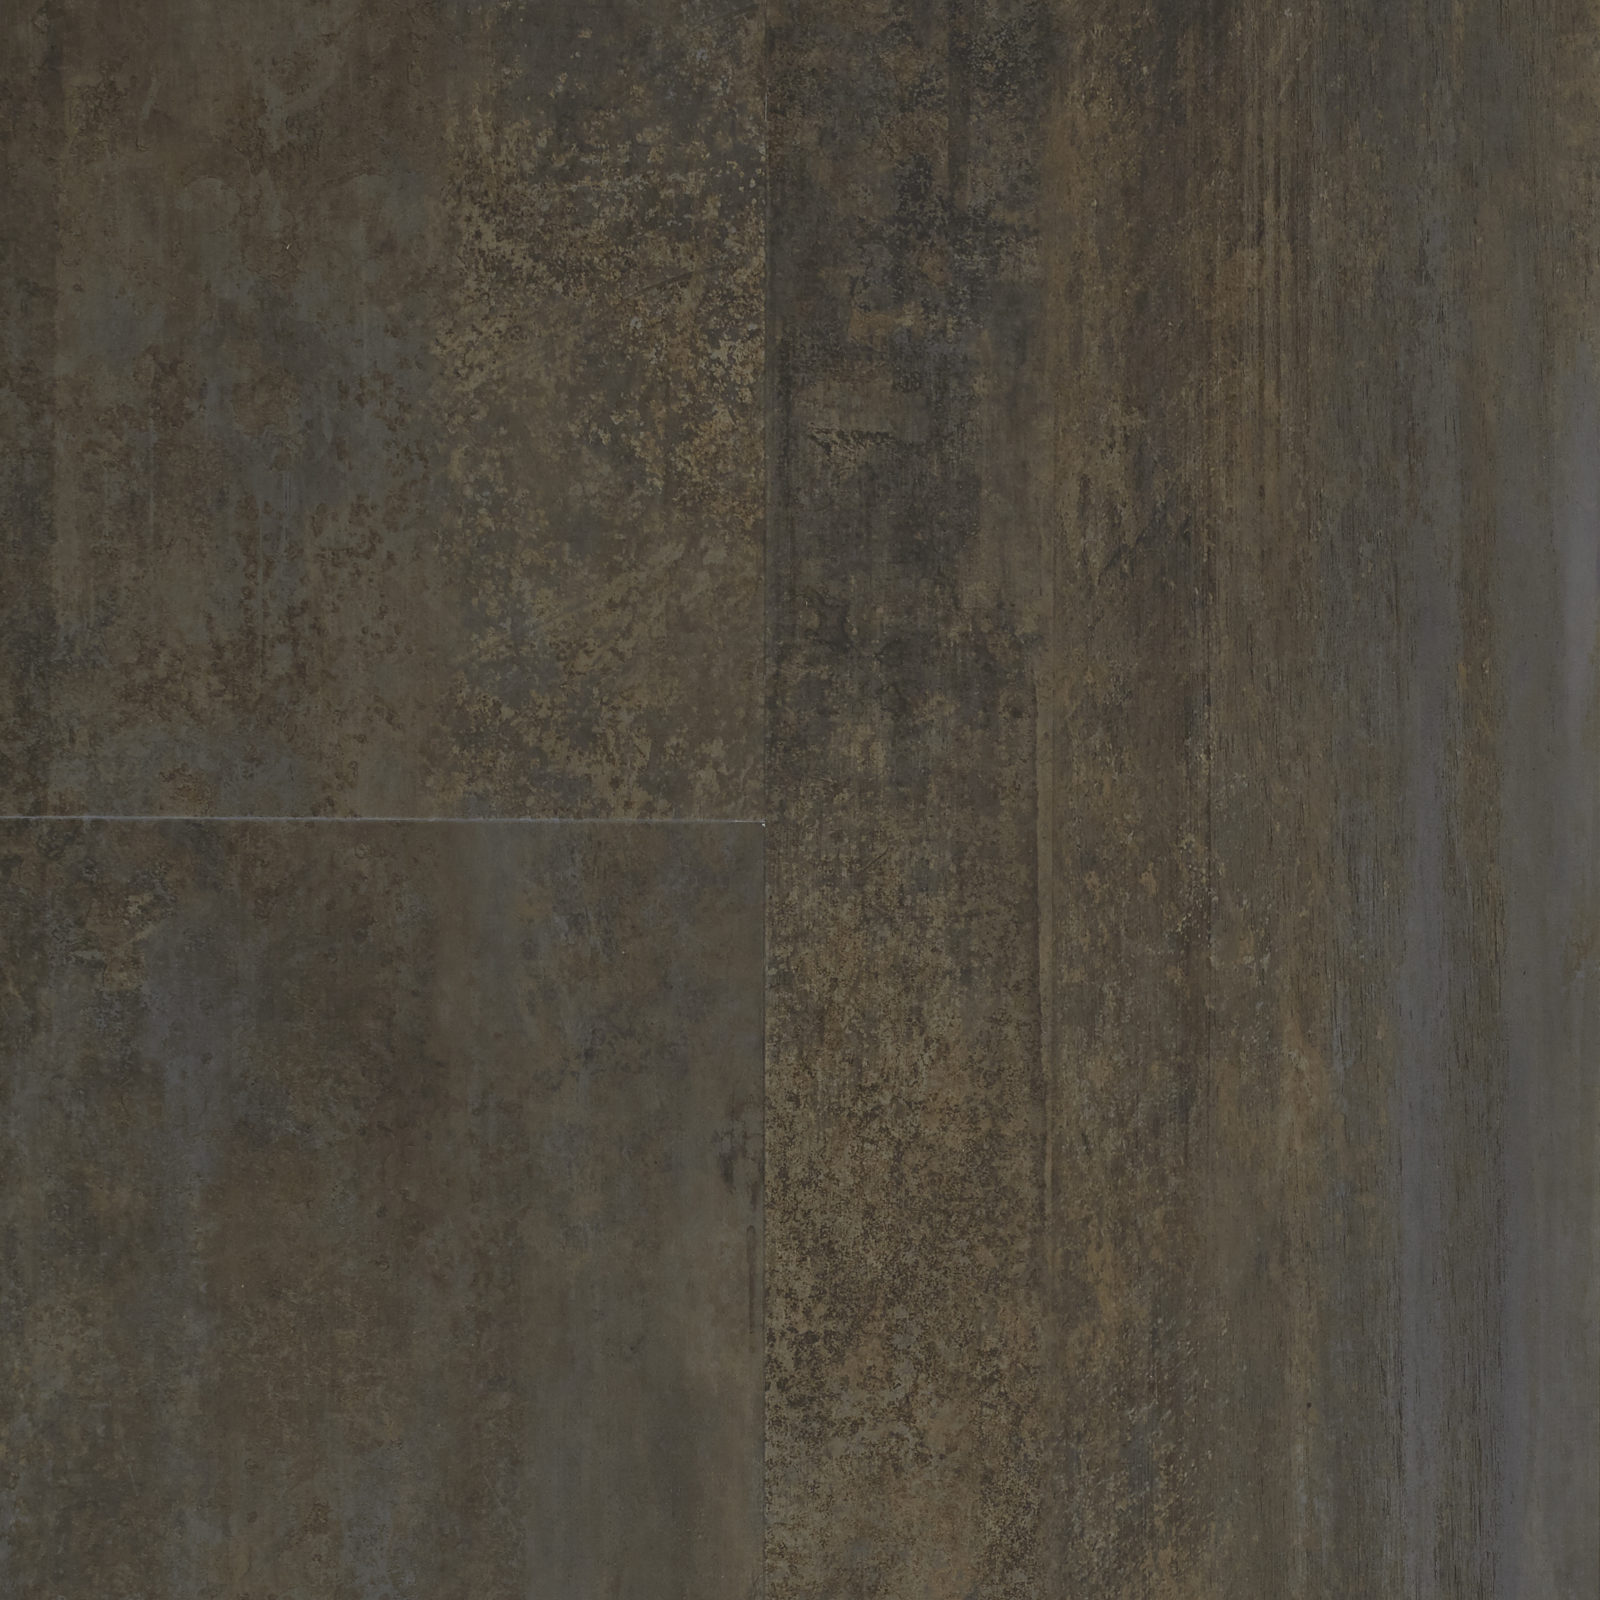 Adura max vinyl floor plank patina mar101 12 x 24 for Mannington vinyl flooring